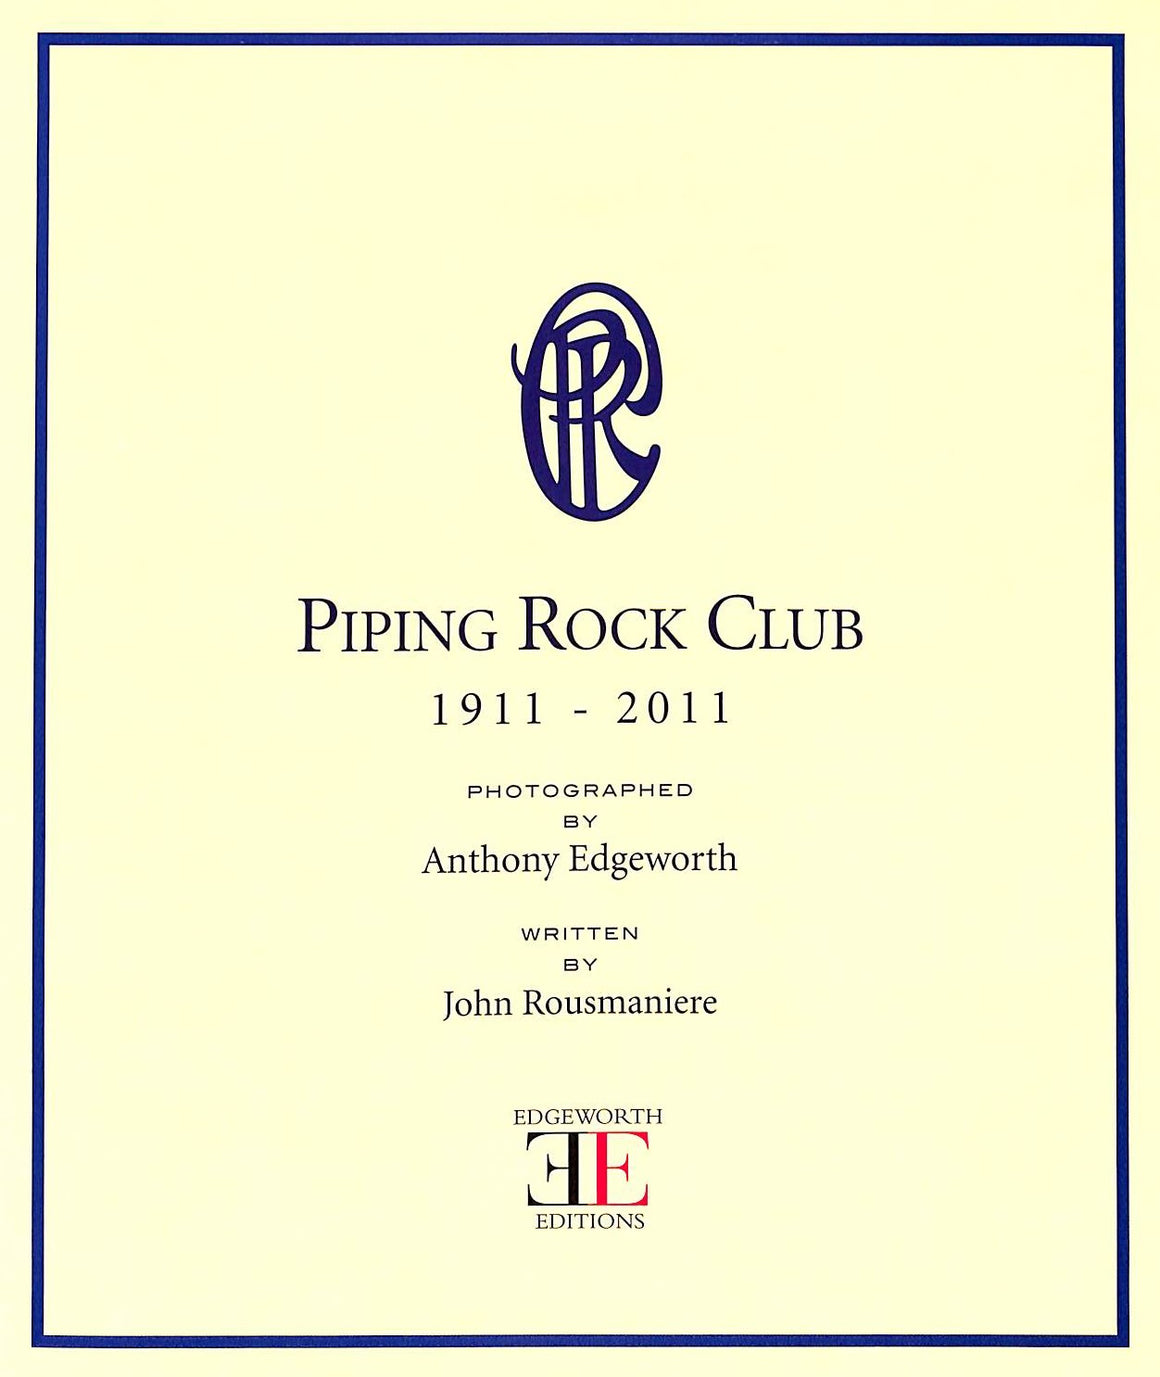 Piping Rock Club 1911-2011 by Anthony Edgeworth and John Rousmaniere (Sold!)